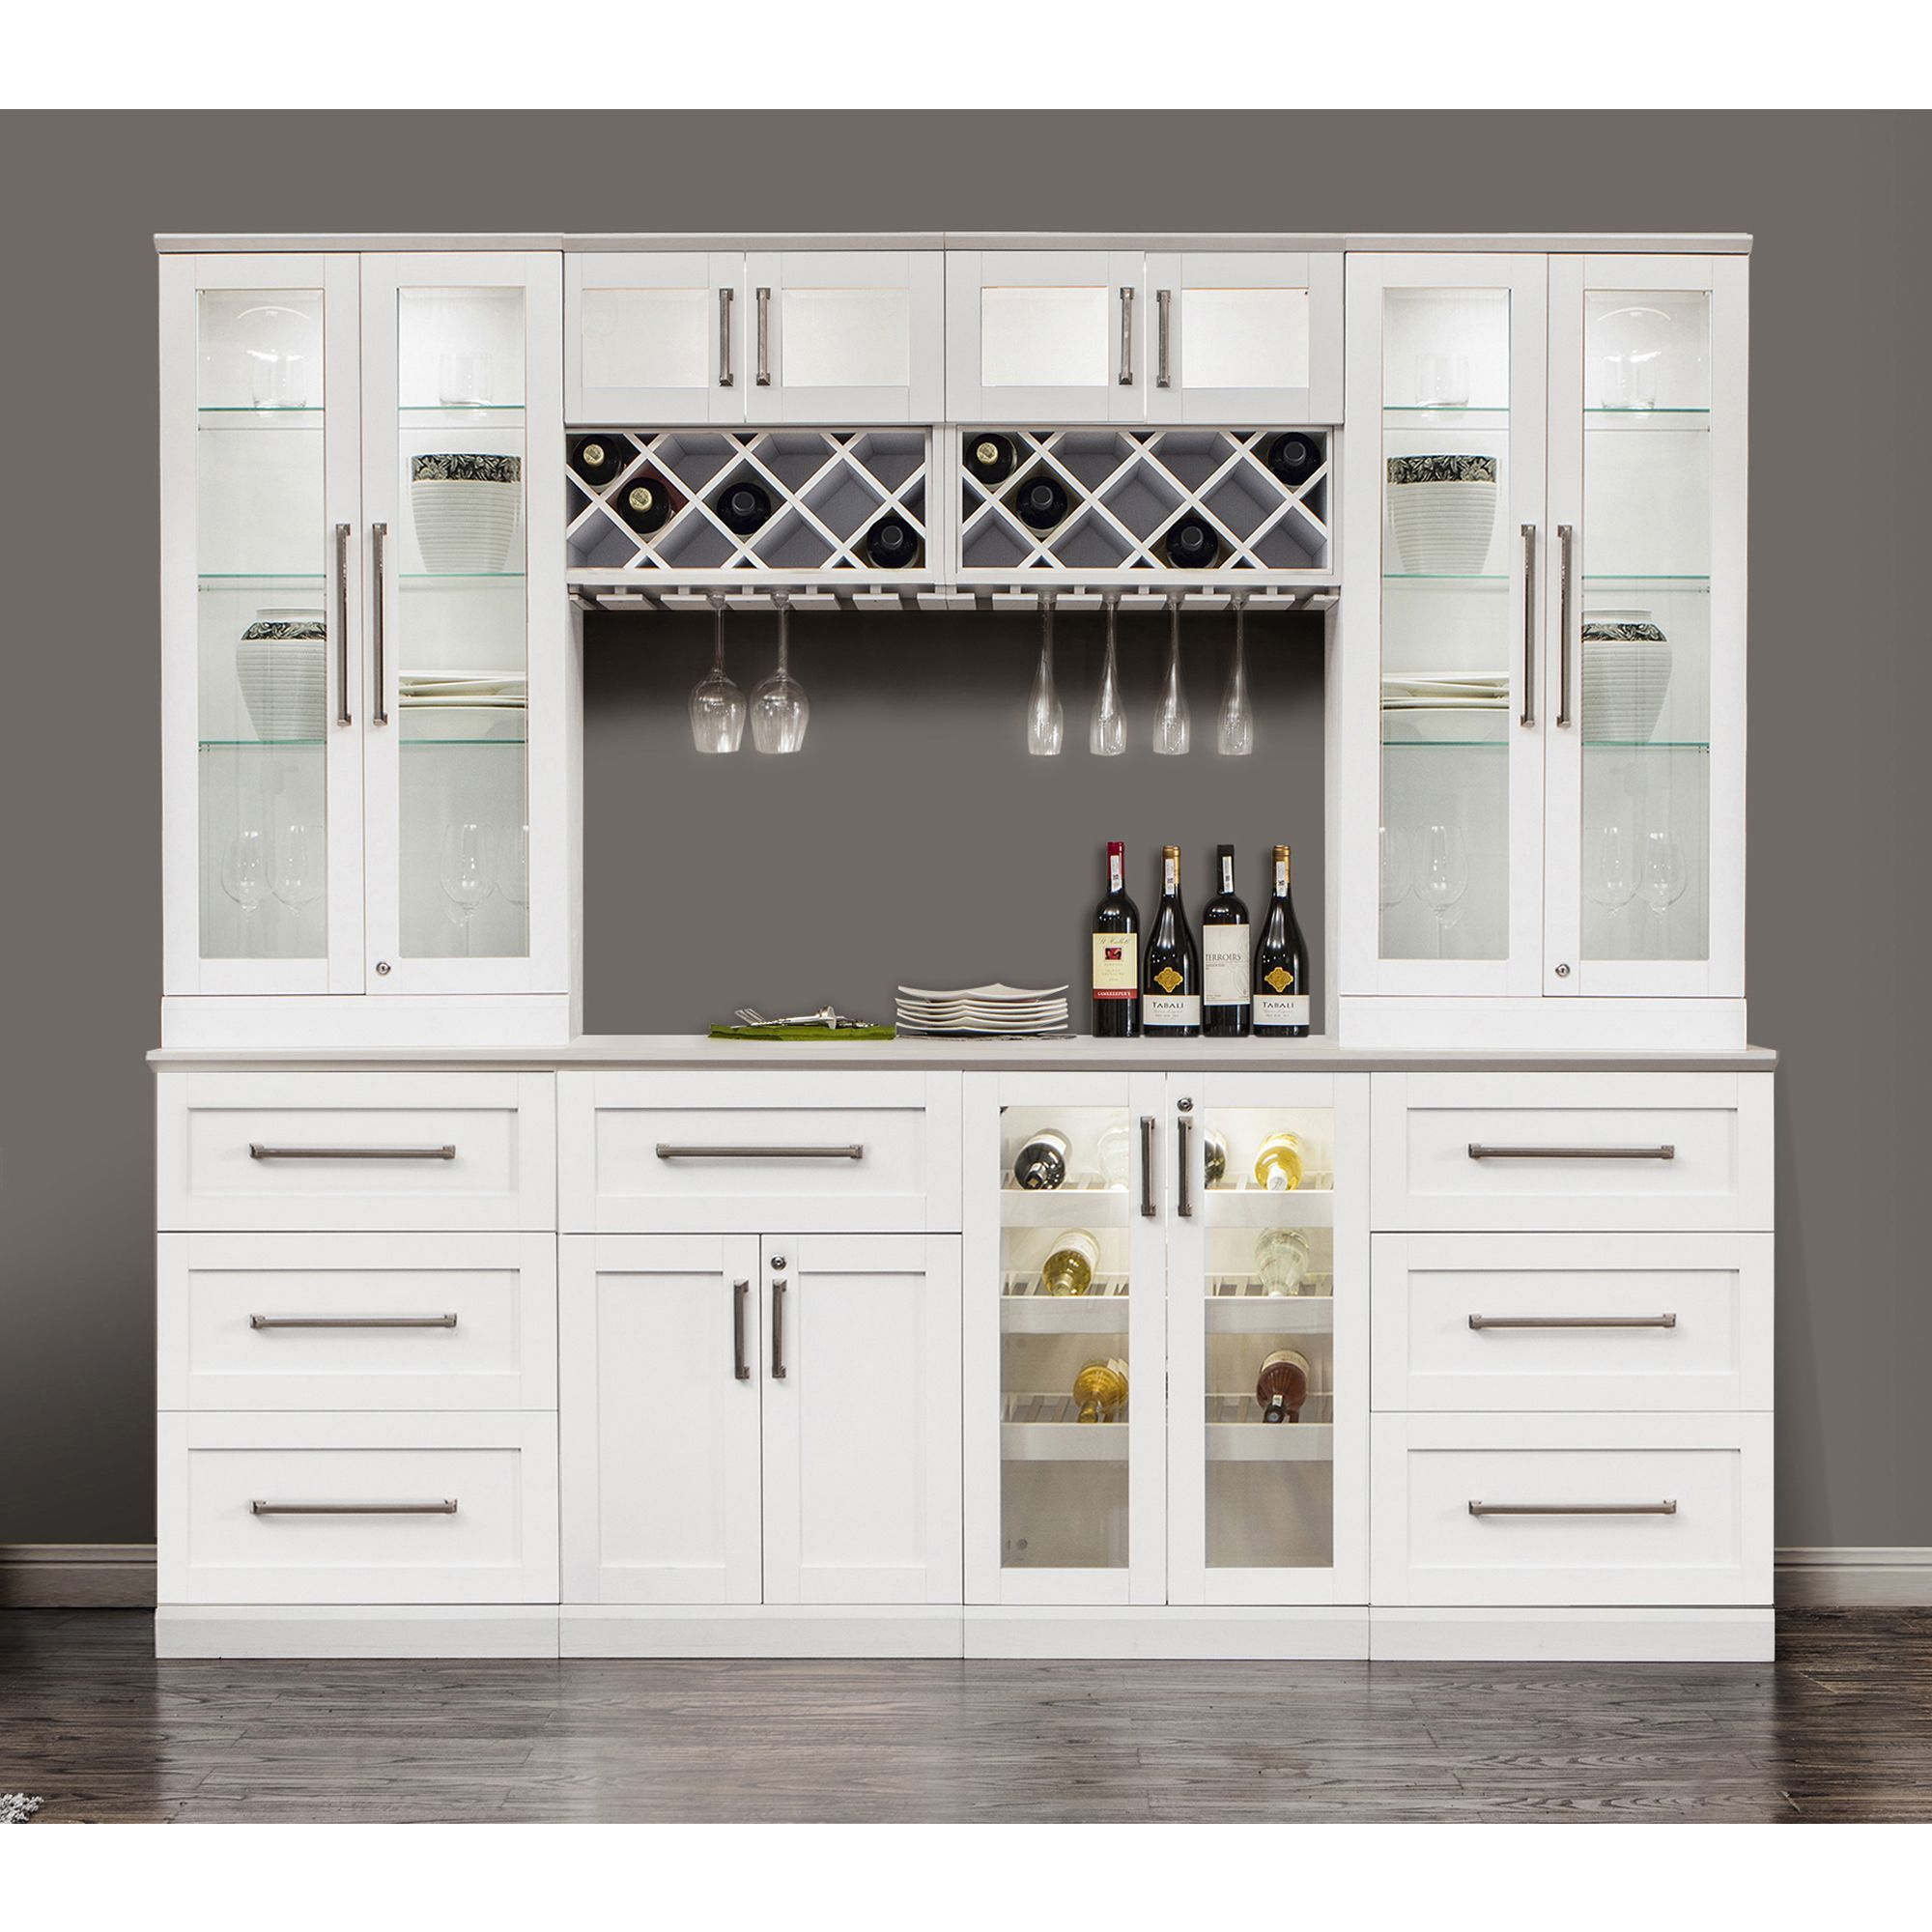 Display Your Wine Collection Proudly With The Beveled Tempered Glass Insert Home Wine Bar Bars For Home Home Bar Cabinet